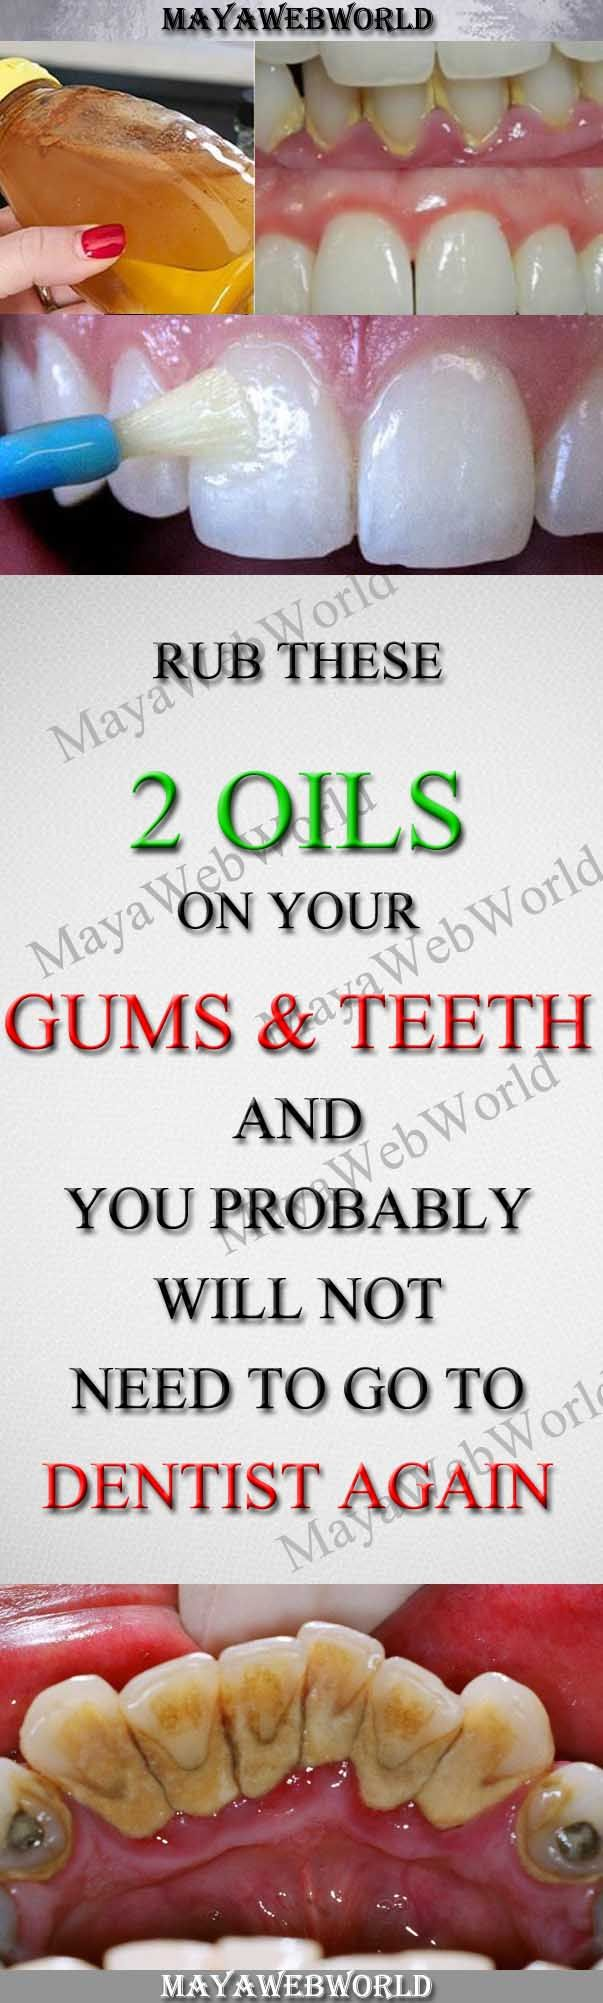 Rub These Two Oils On Your Gums And Teeth And You Probably Will Not Need To Go To Dentist Again – MayaWebWorld